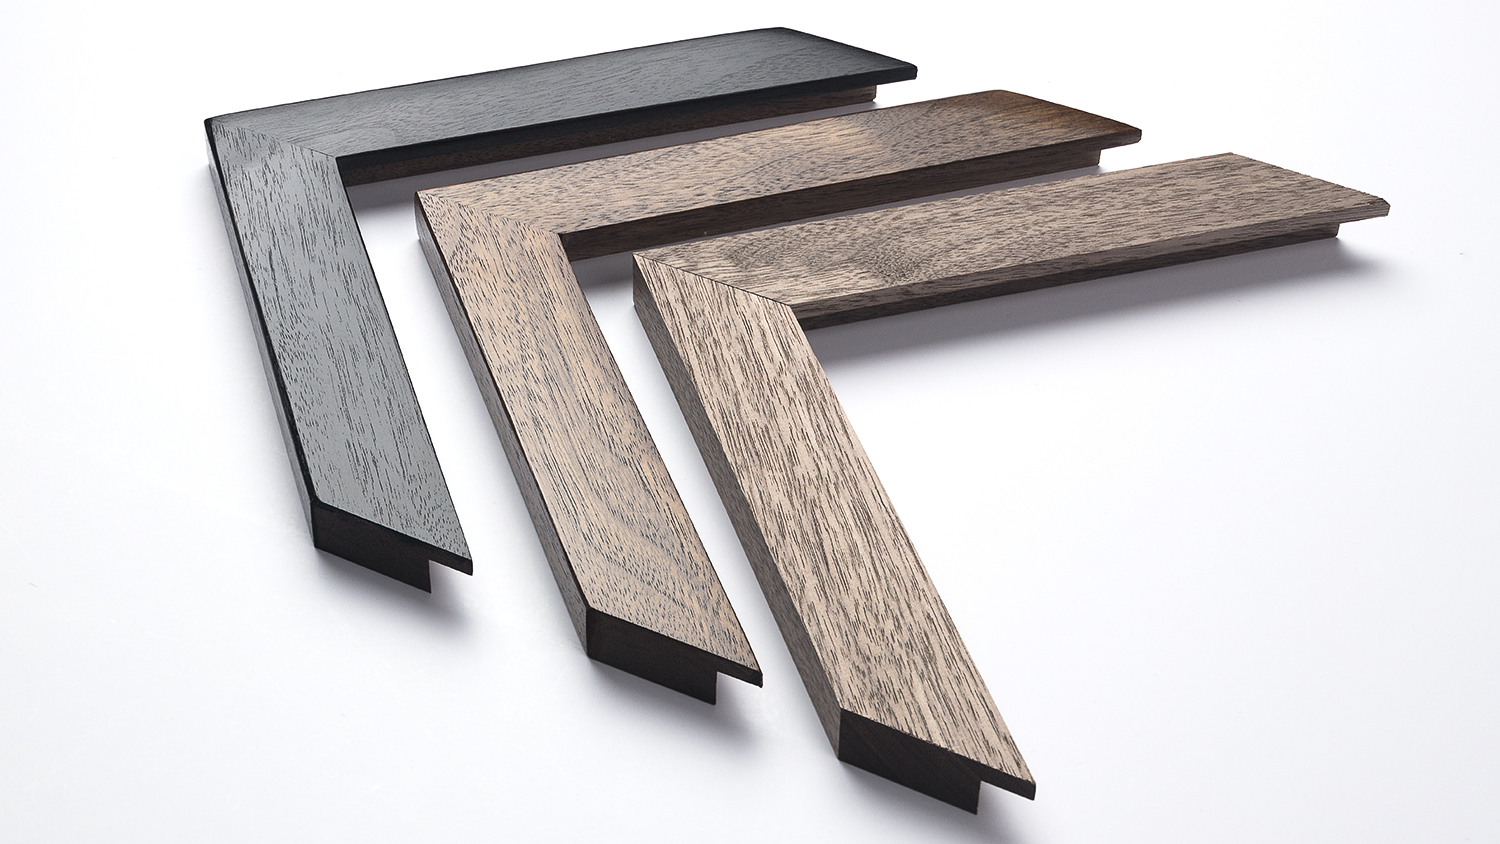 Walnut Frame 30mm x 17mm (Finishes shown from left to right)